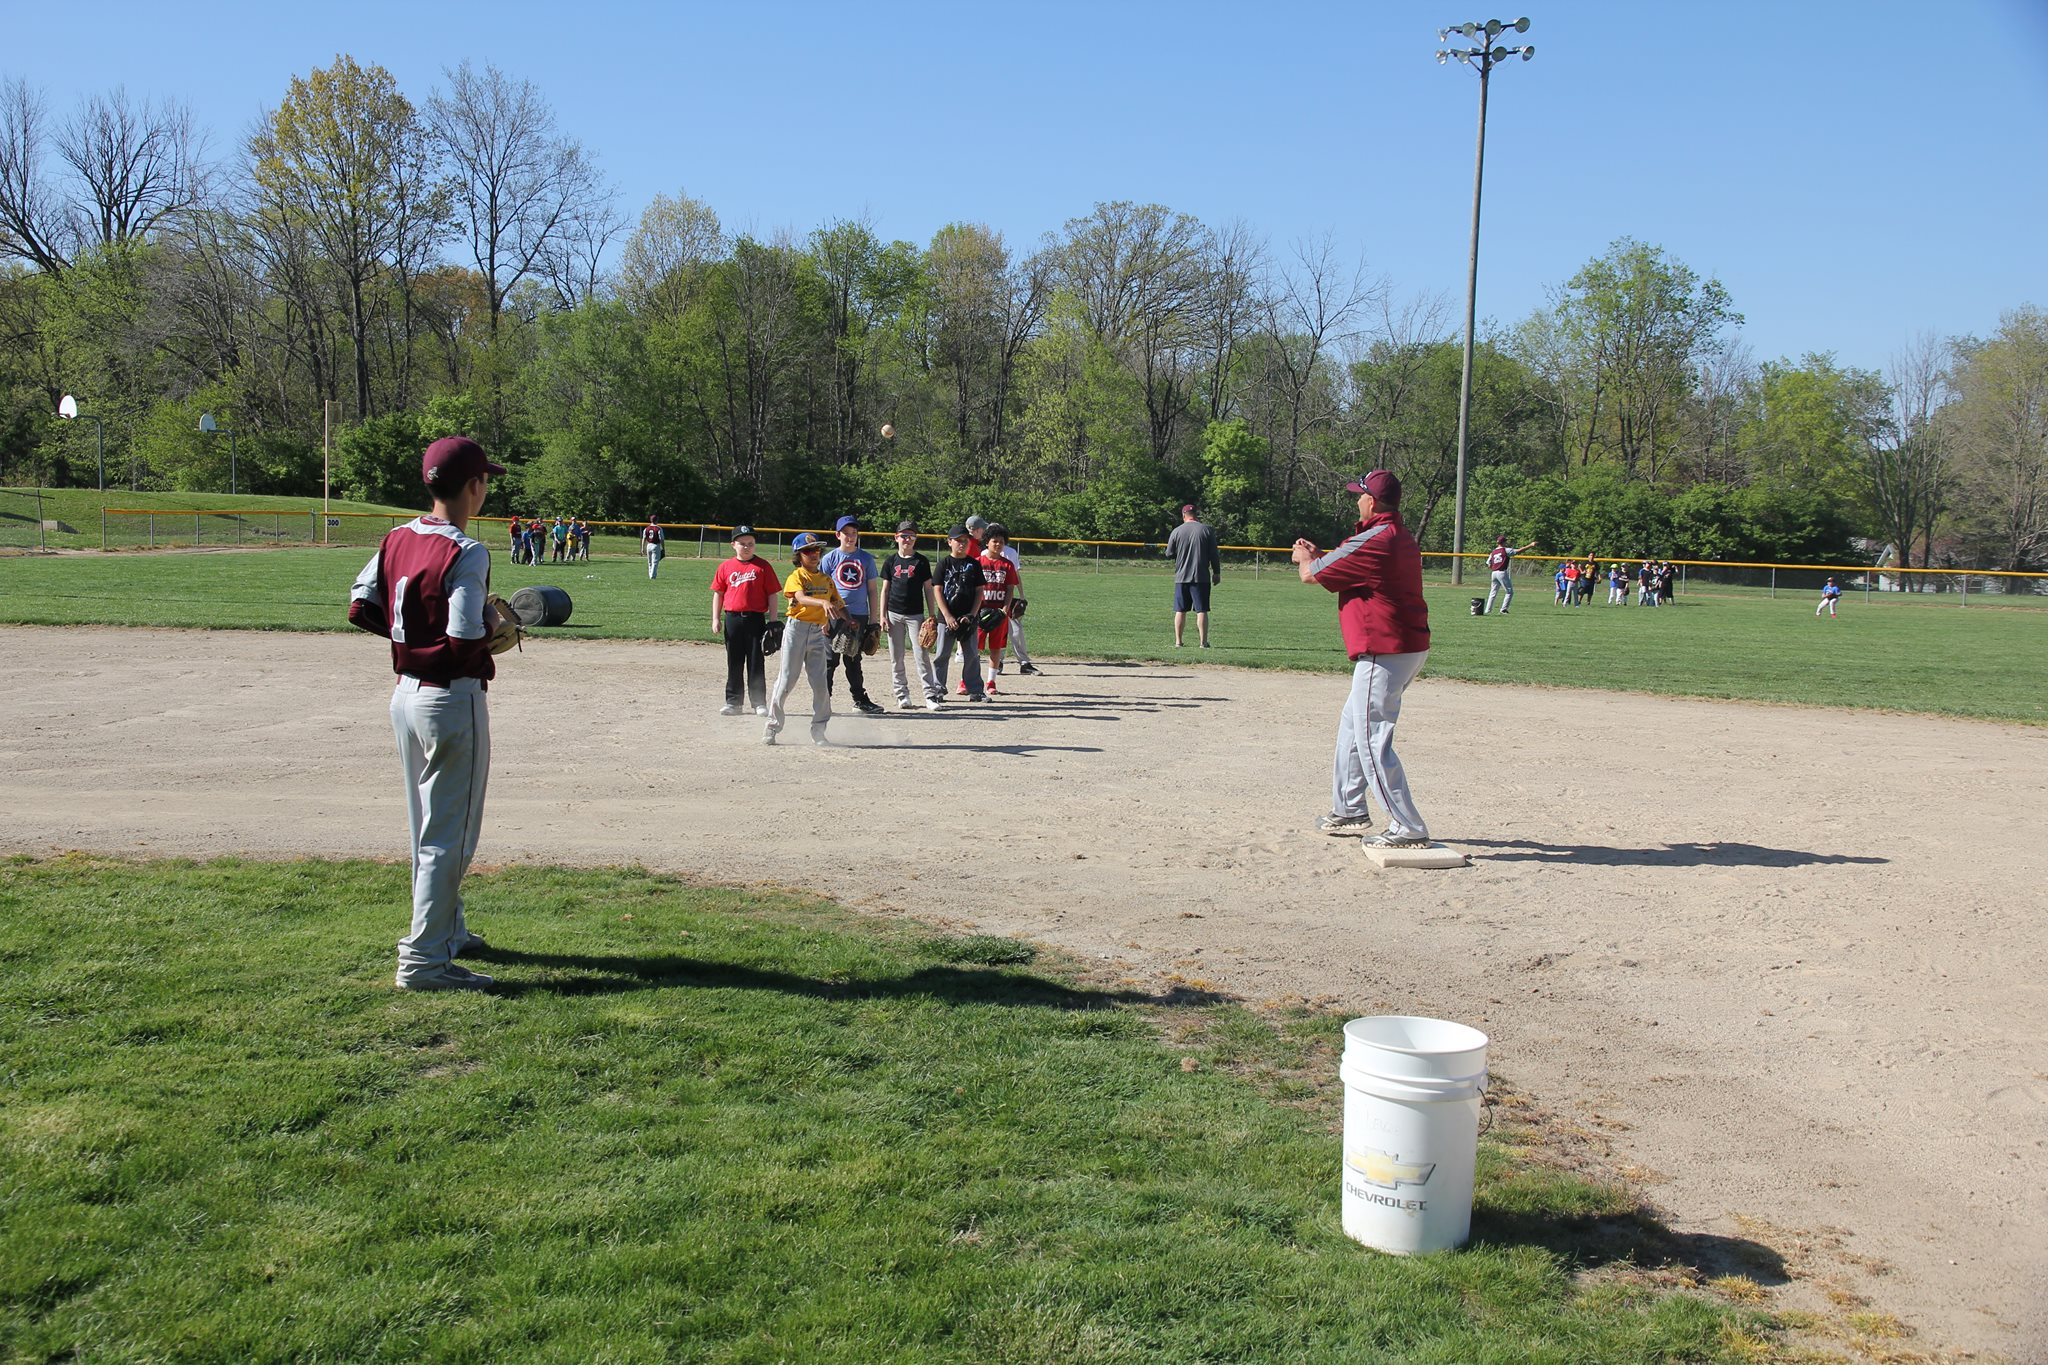 Danville High School JV Head Coach Mike Dokey working with players on fielding ground balls and throwing to a base for a force out.